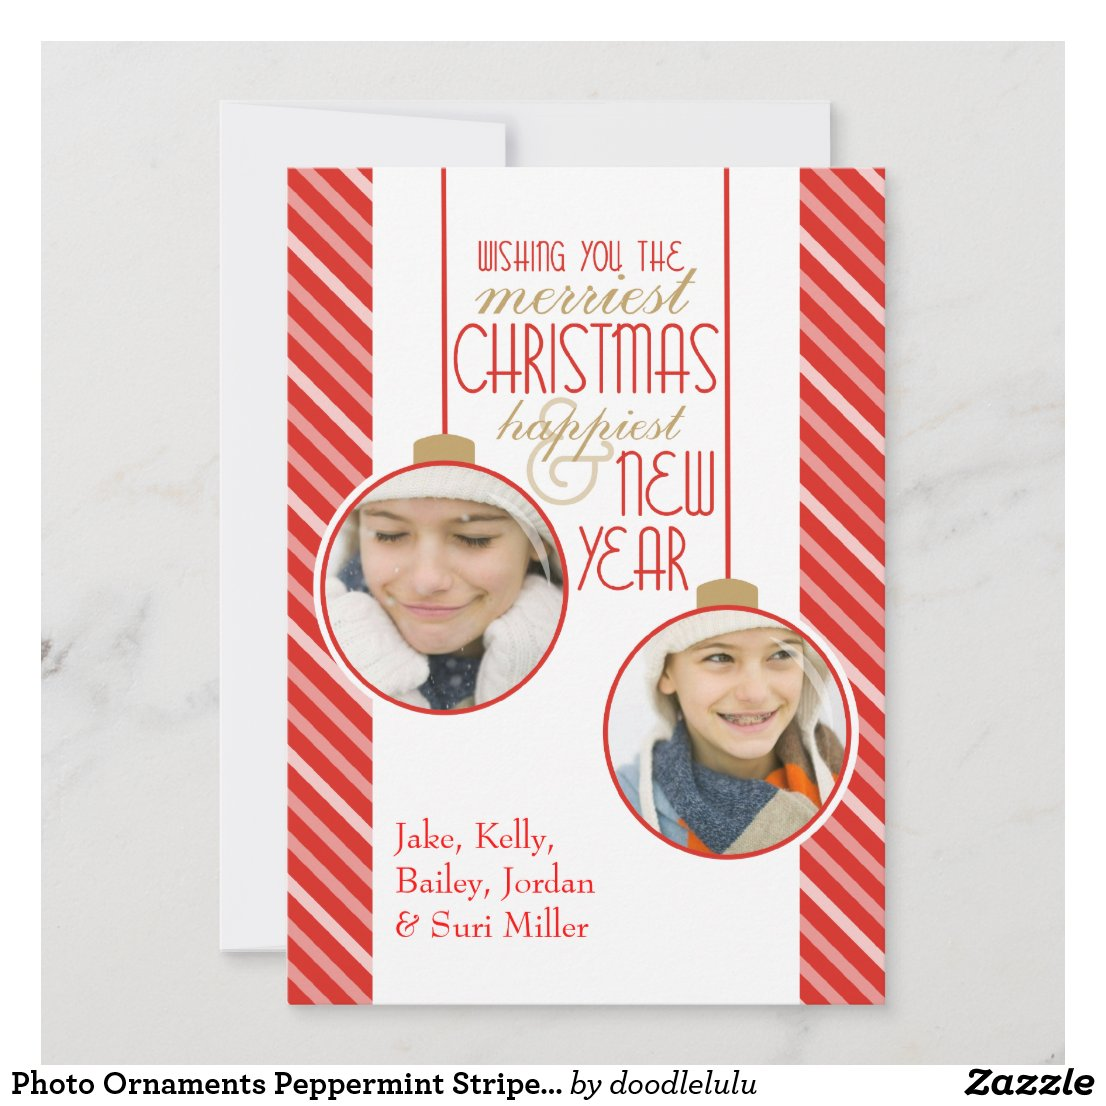 Photo Ornaments Peppermint Stripes Christmas Card